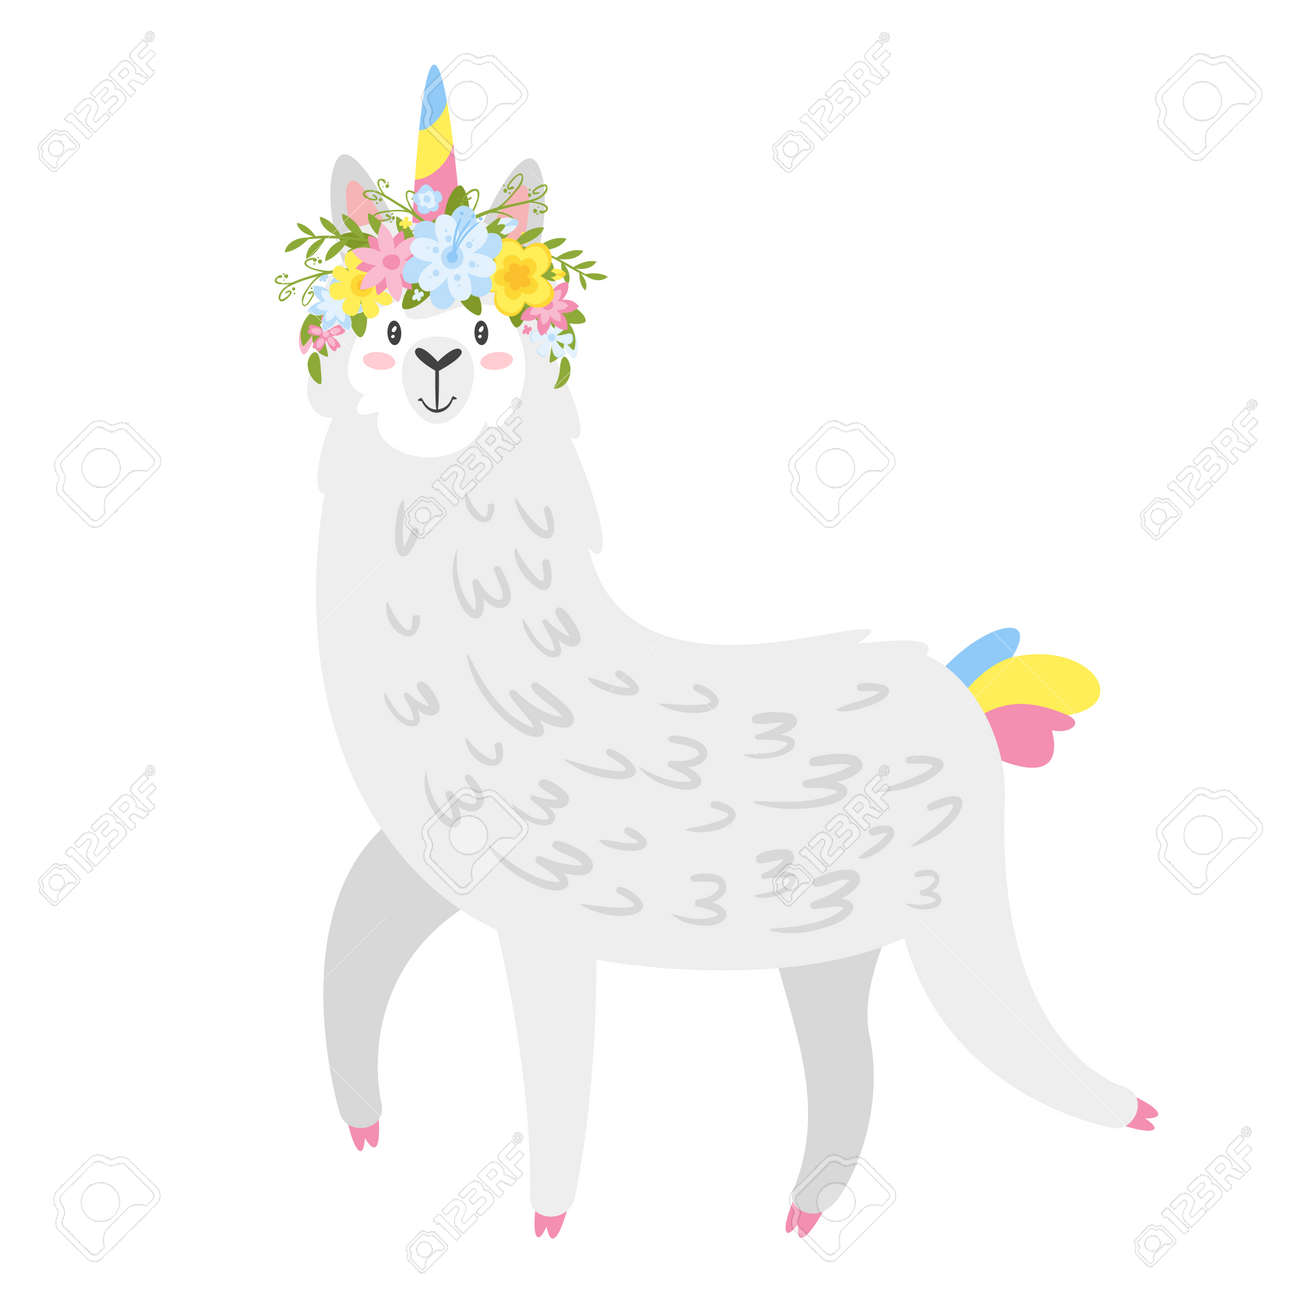 Cute lama. Alpaca animal with unicorn horn and flower wreath. Vector illustration, isolated on white background. Design for poster, sticker or t-shirt. - 113507759